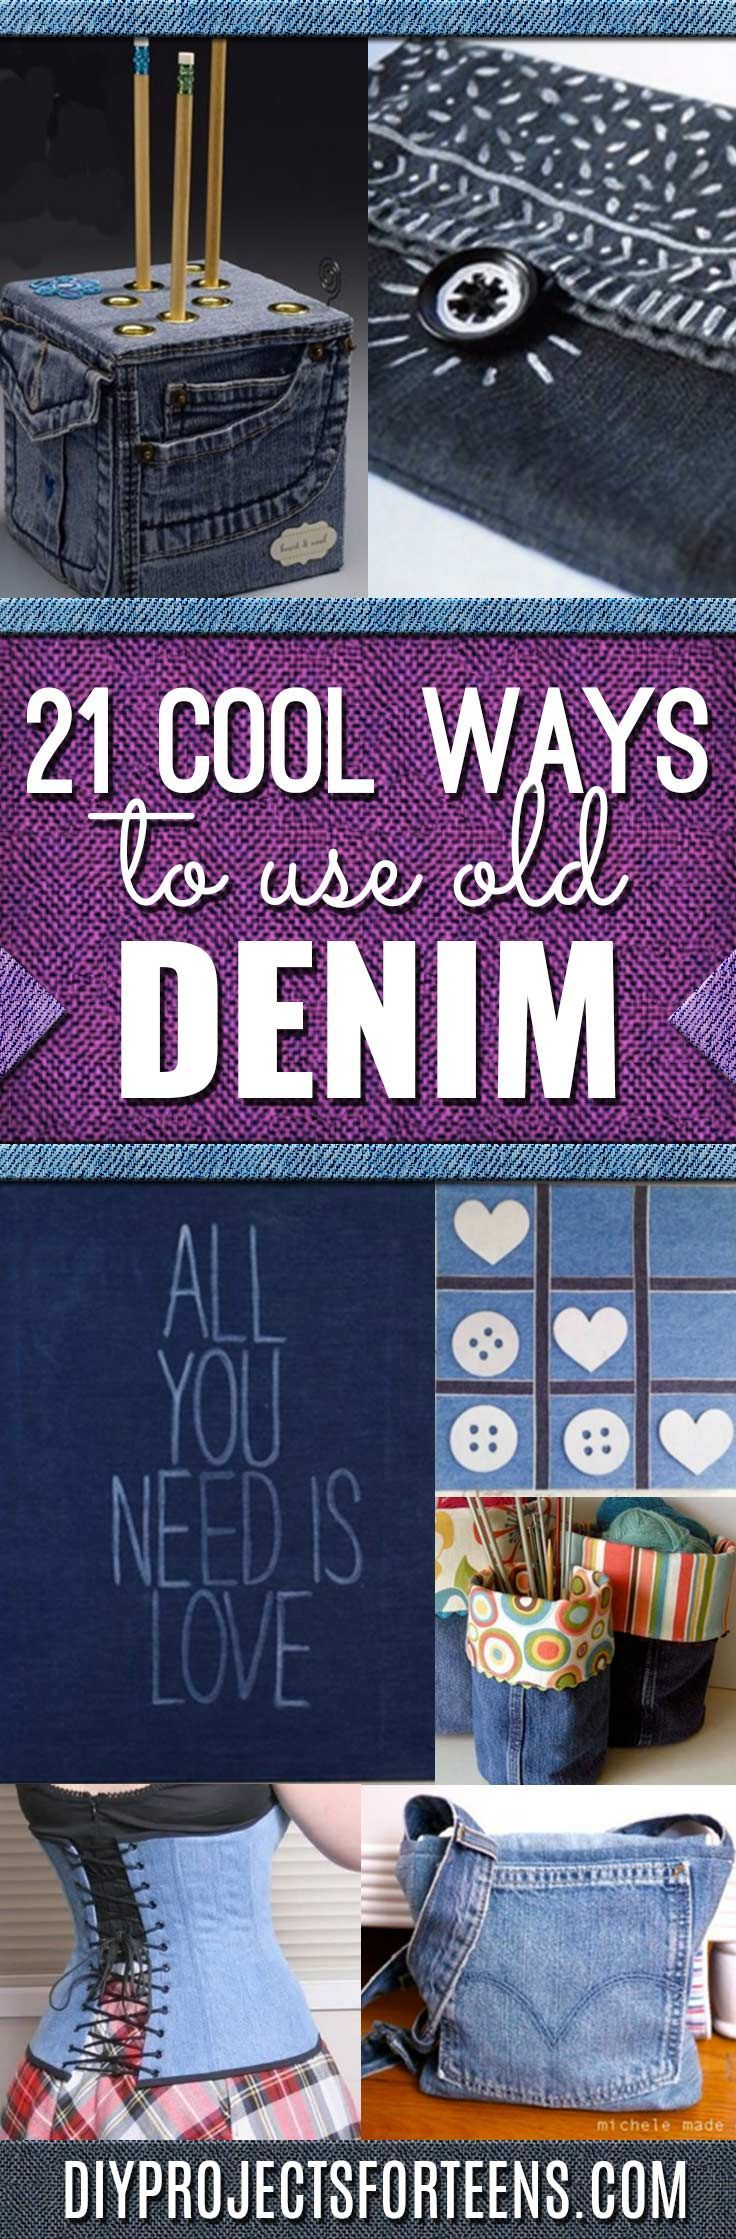 21 Awesome Ways To Use Old Denim